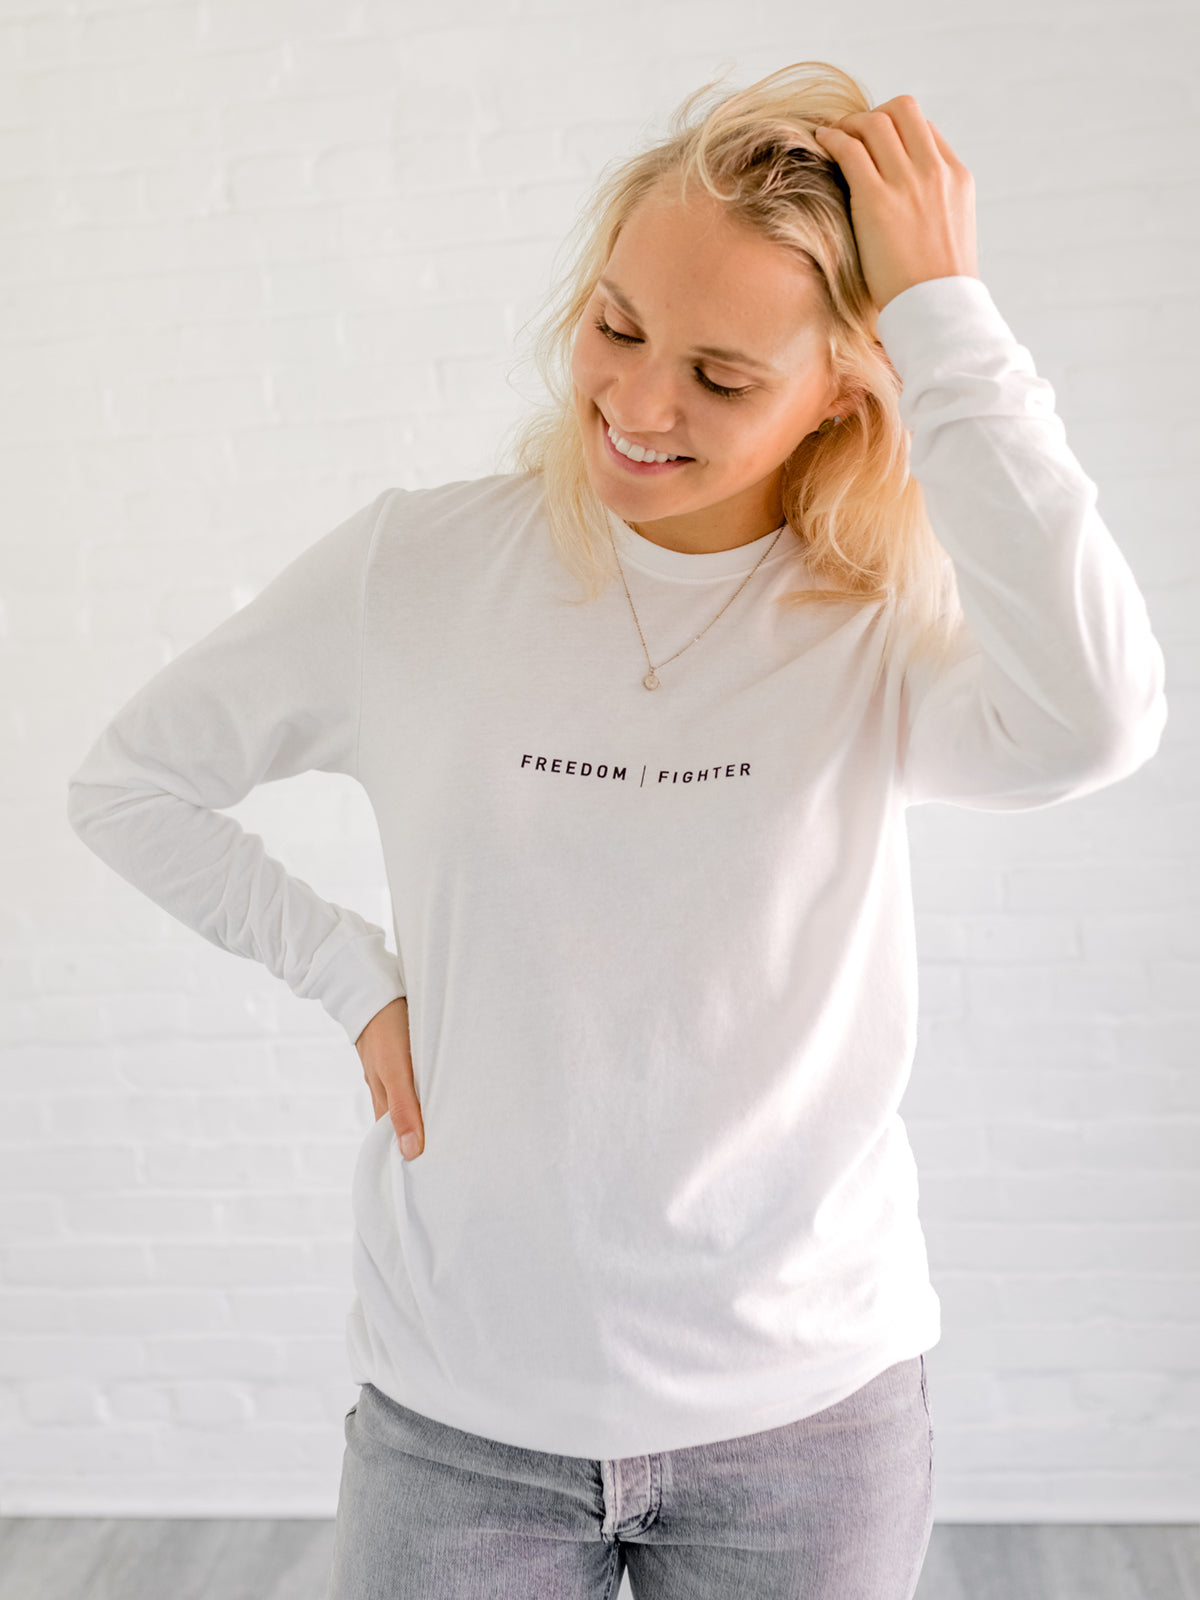 FREEDOM FIGHTER - White Long Sleeve T-Shirt